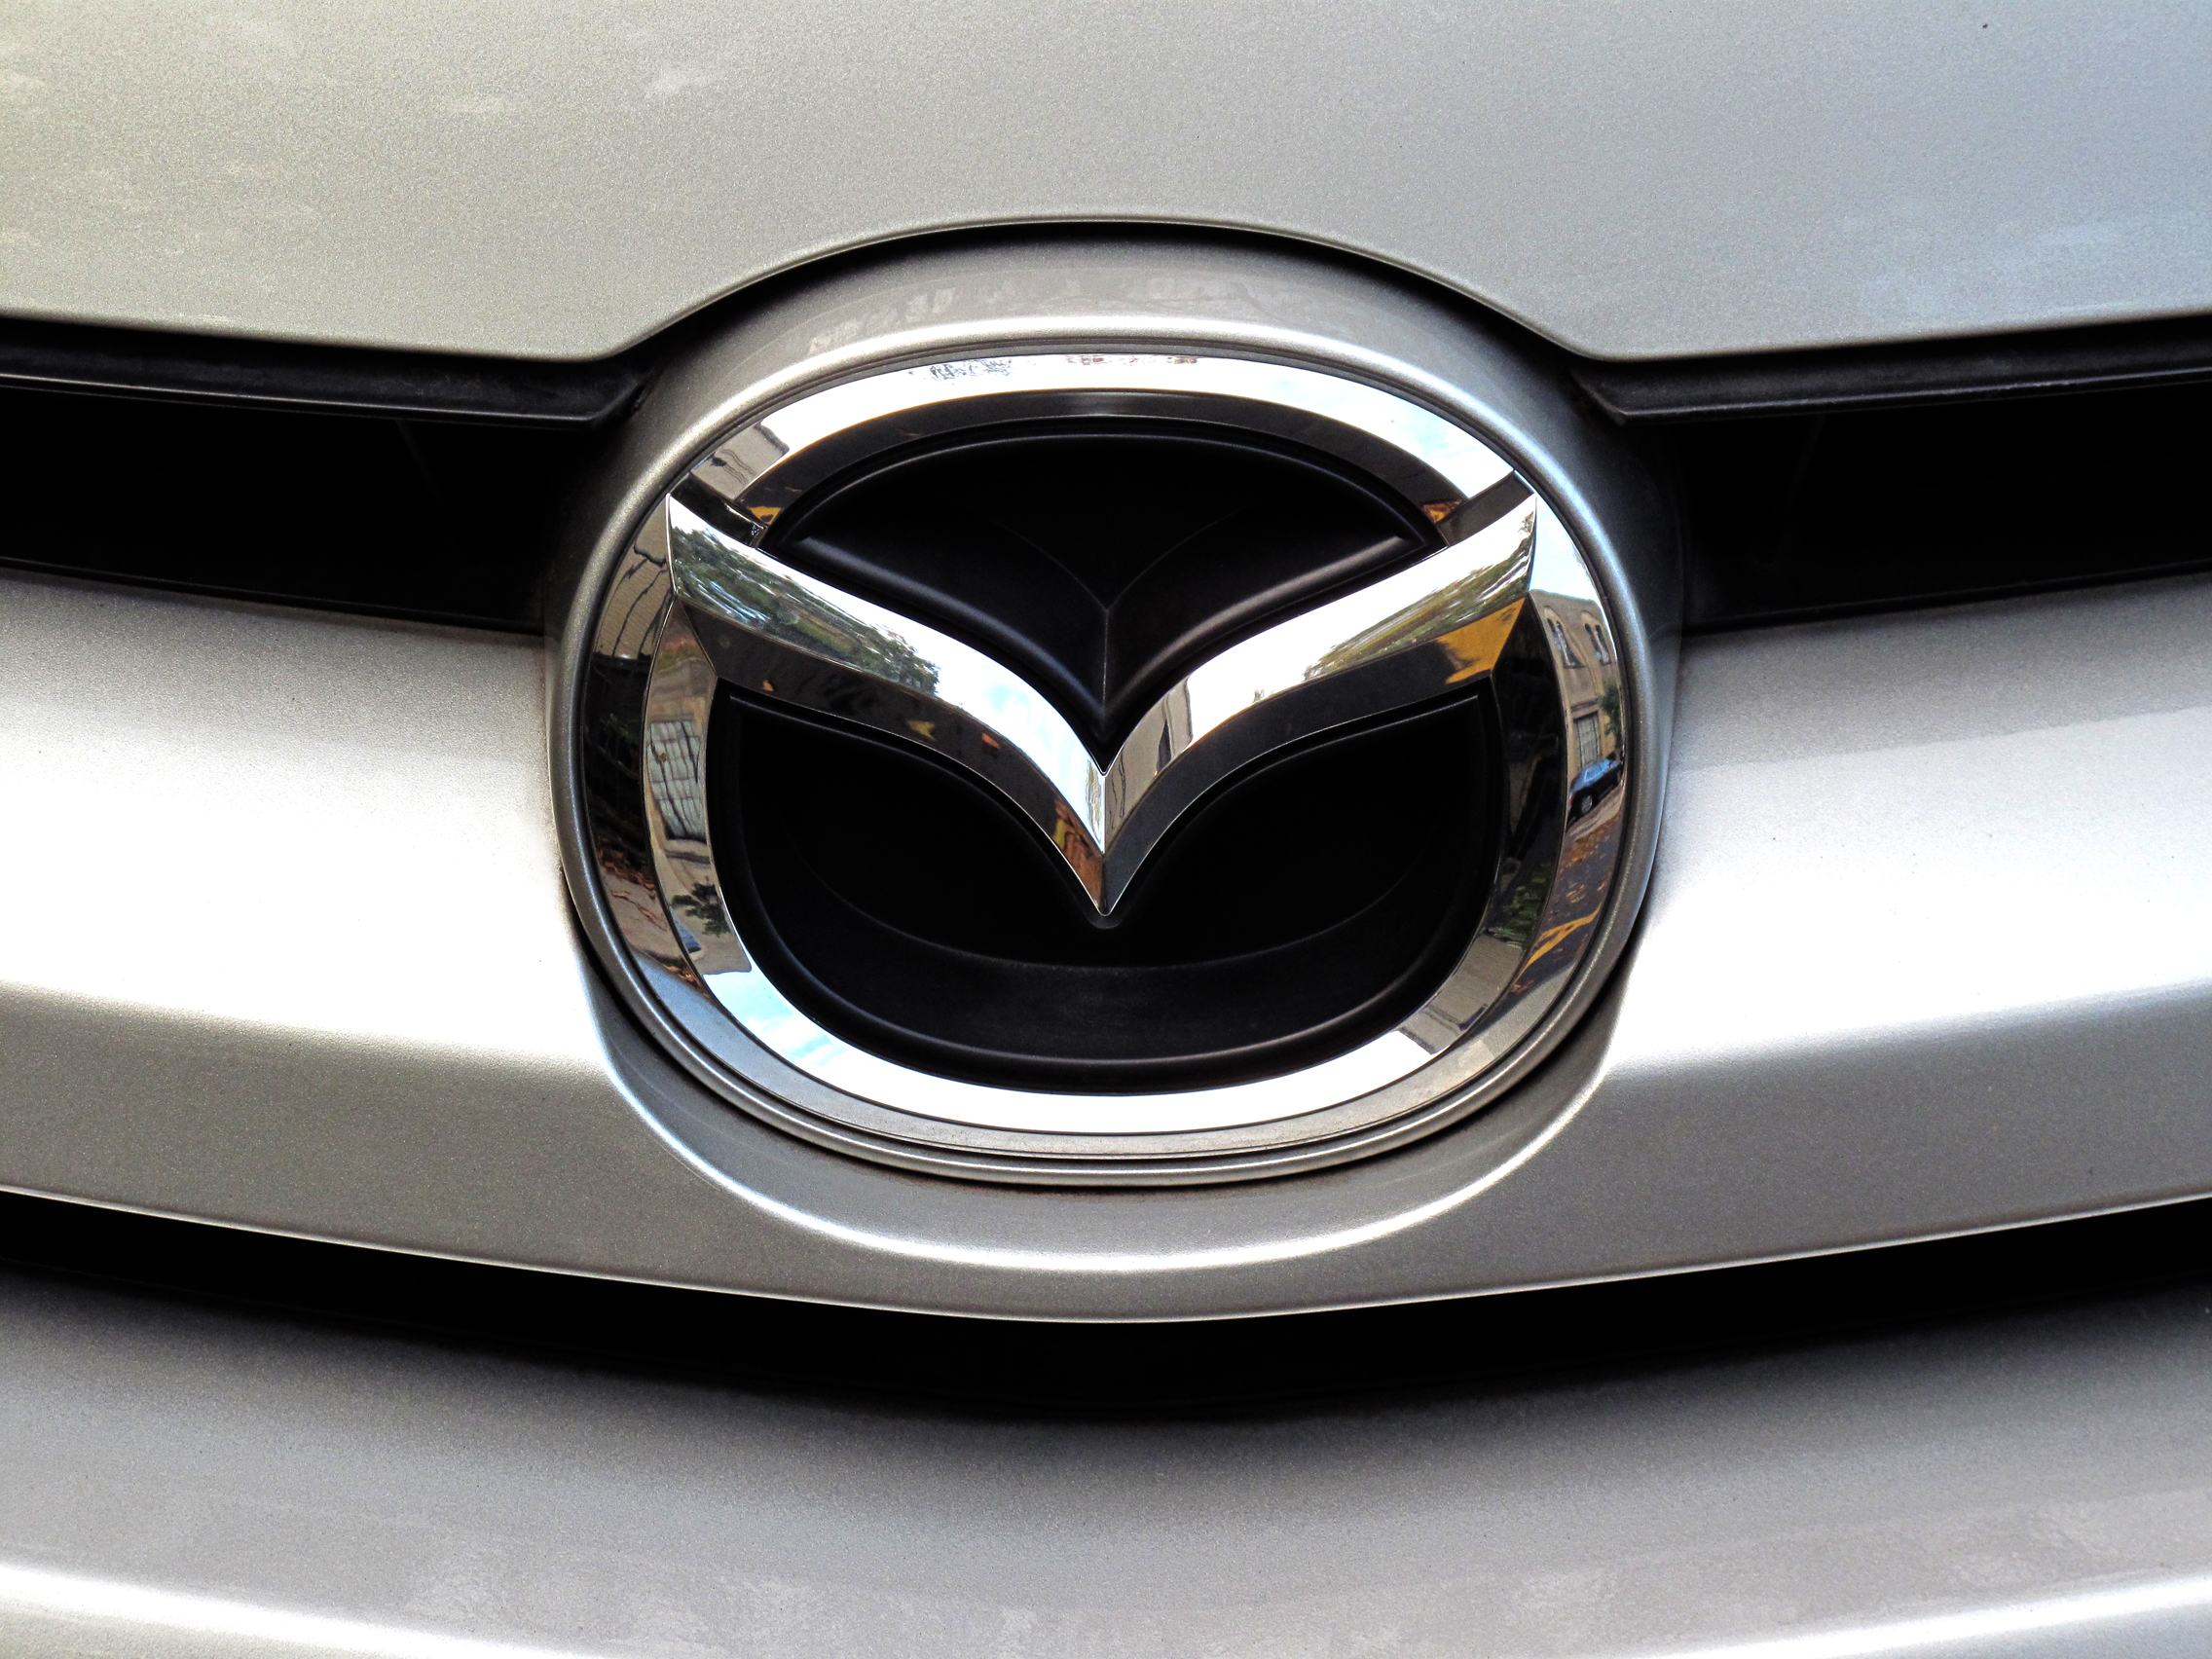 mazda logo on front of car